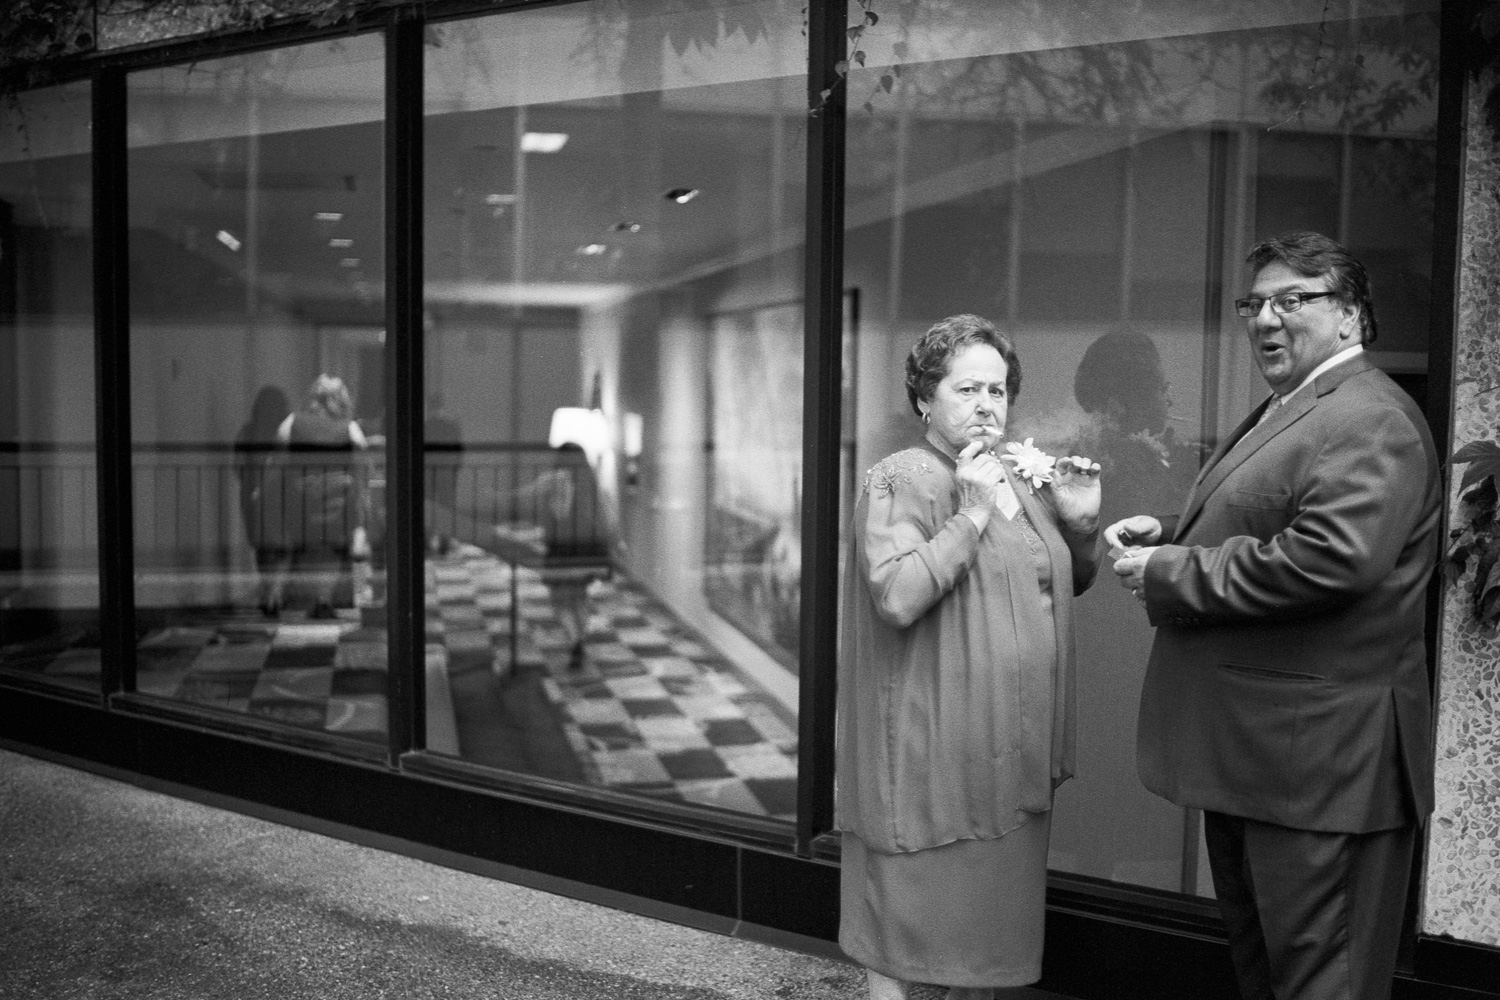 One of my favorite moments of 2015 :) We had just finished a request for a family group photograph and I saw these two starting to light up a cigarette. As I was walking towards the door, I quickly aligned my camera settings, set focus and clicked the shutter JUST as they saw me taking their photograph.